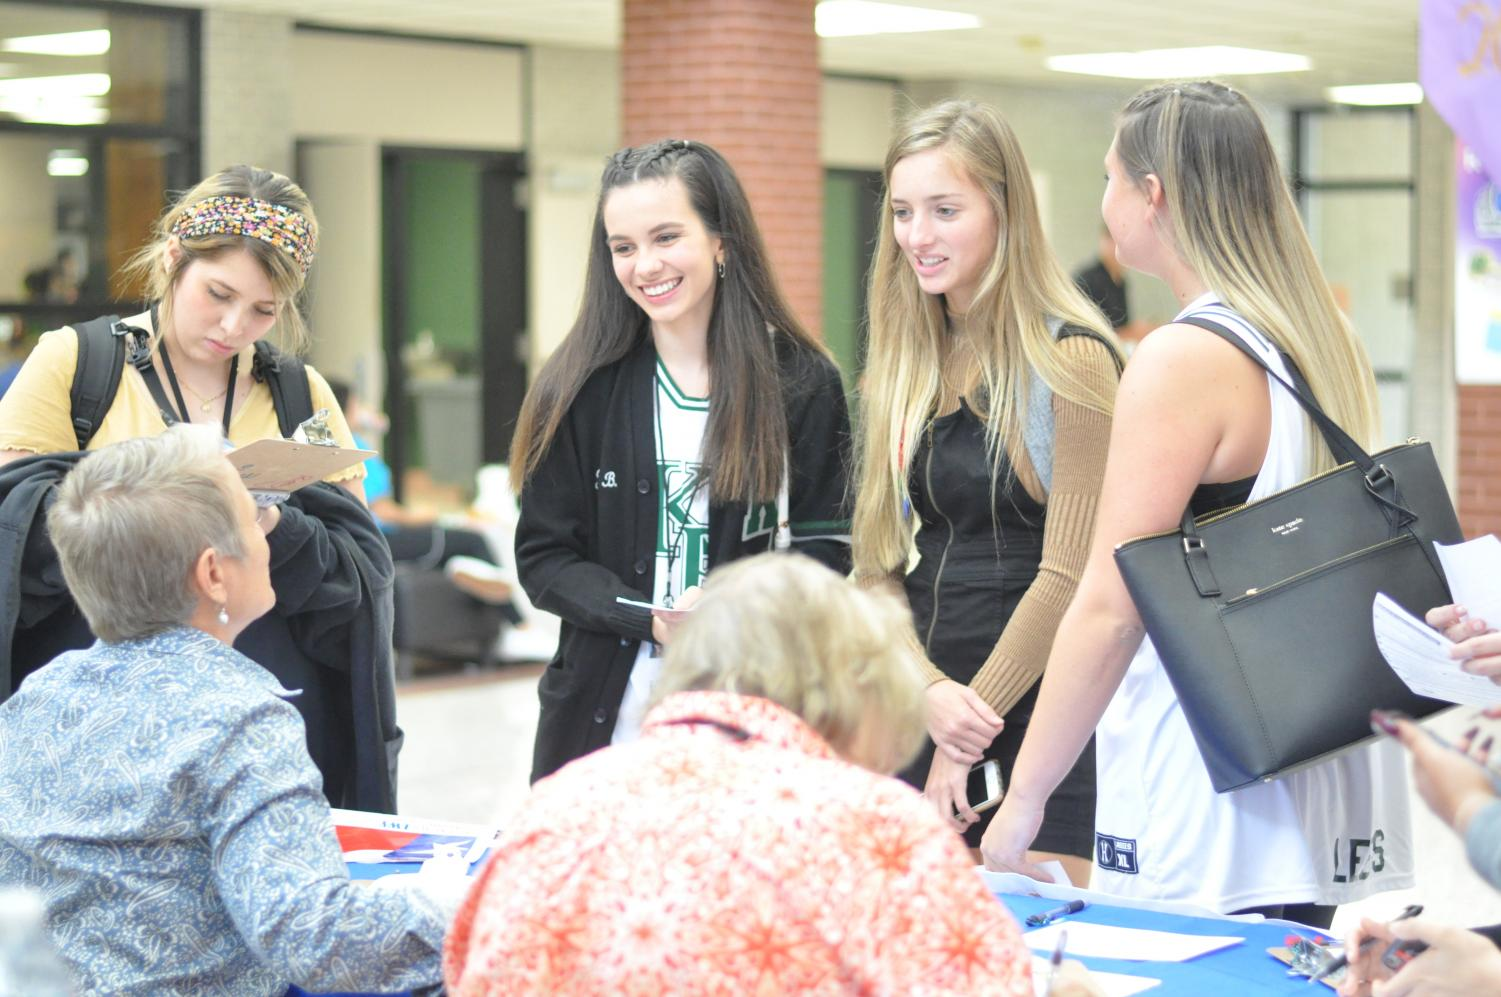 Seniors Giselle Roman, Jaclyn Brumfield, Hailey Dwight and Tanna Leeds talk with two women from the League of Women Voters who came during flex hour to register students to vote.